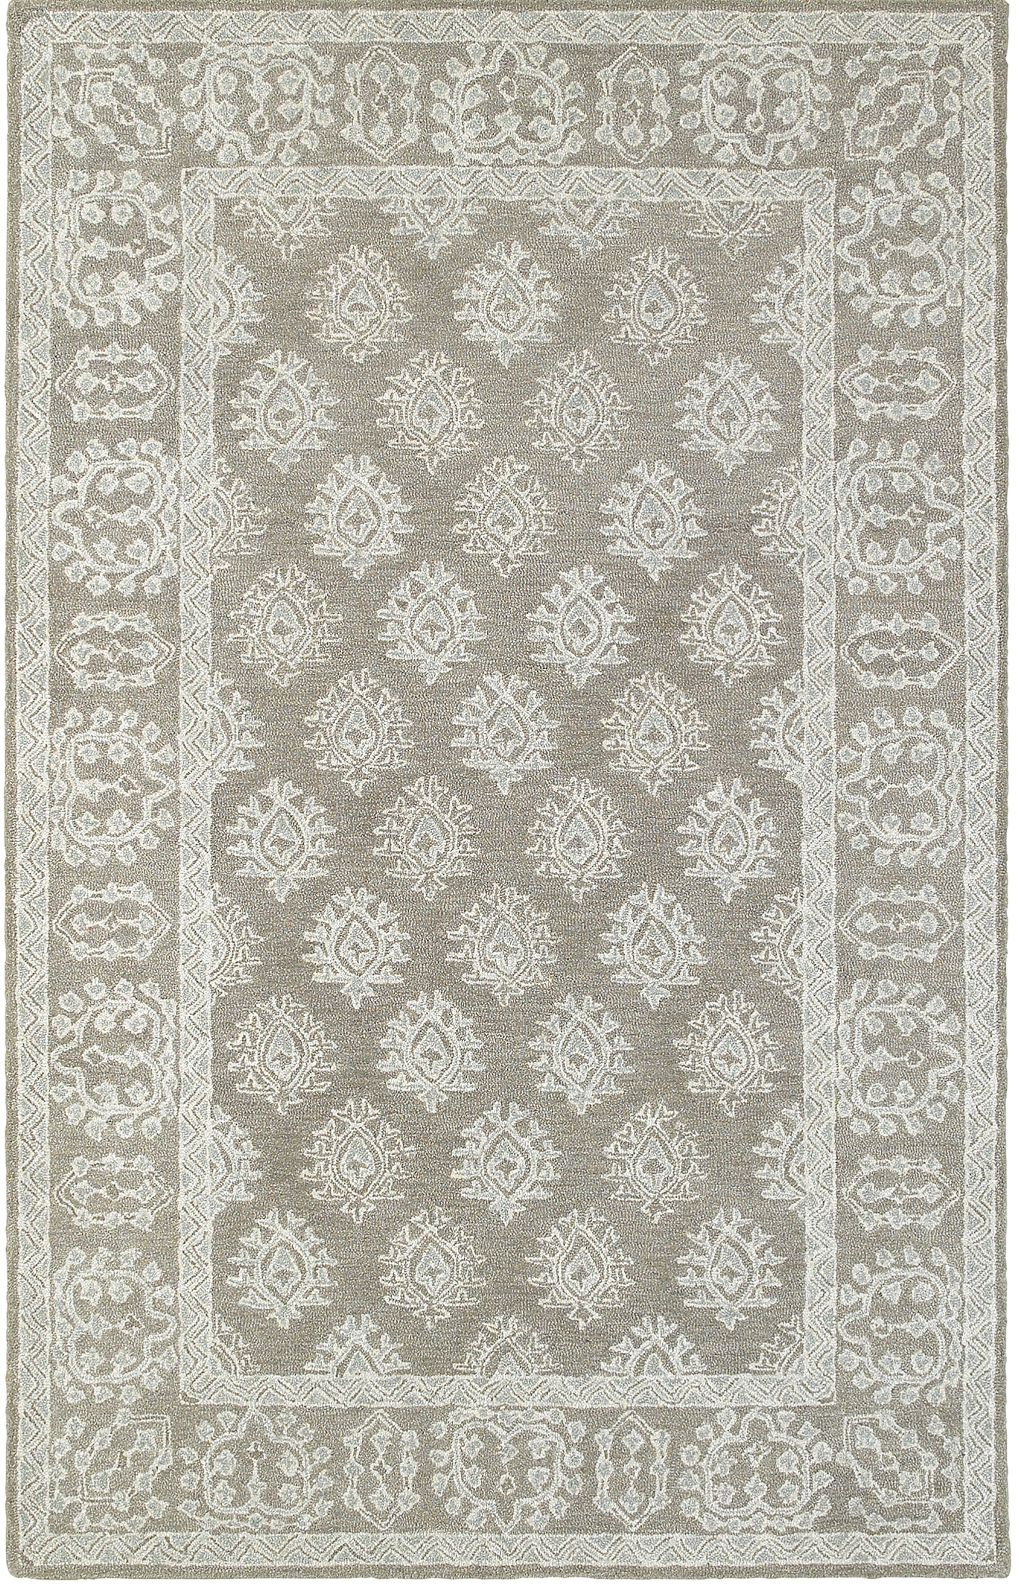 Manor 81202 Beige By Sphinx Oriental Weavers